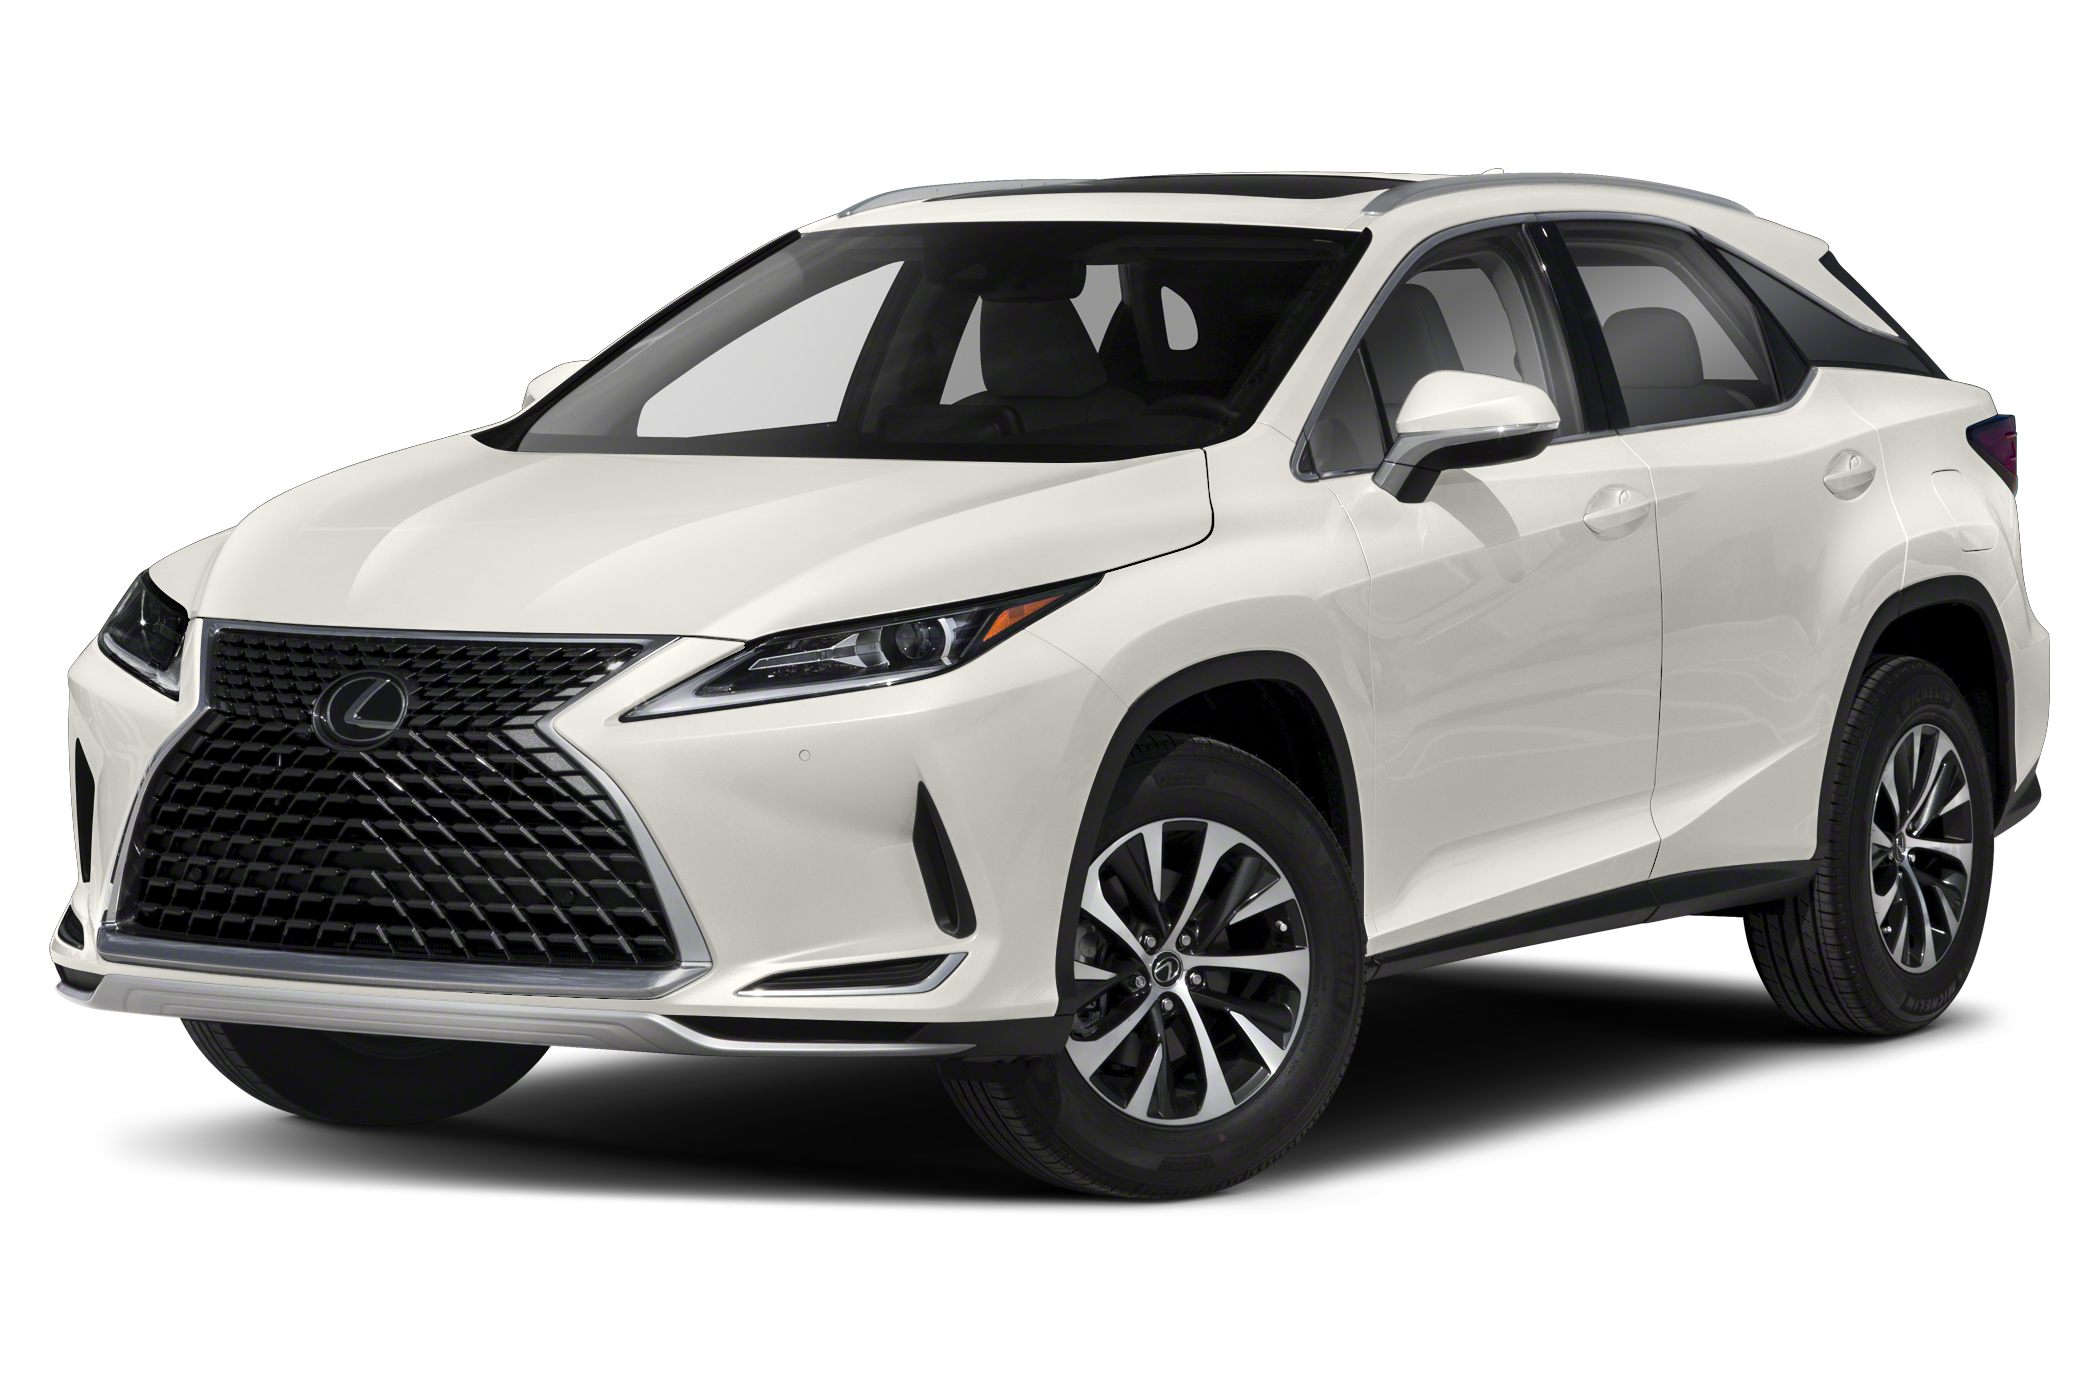 New 2020 Lexus RX 350 Price Photos Reviews Safety